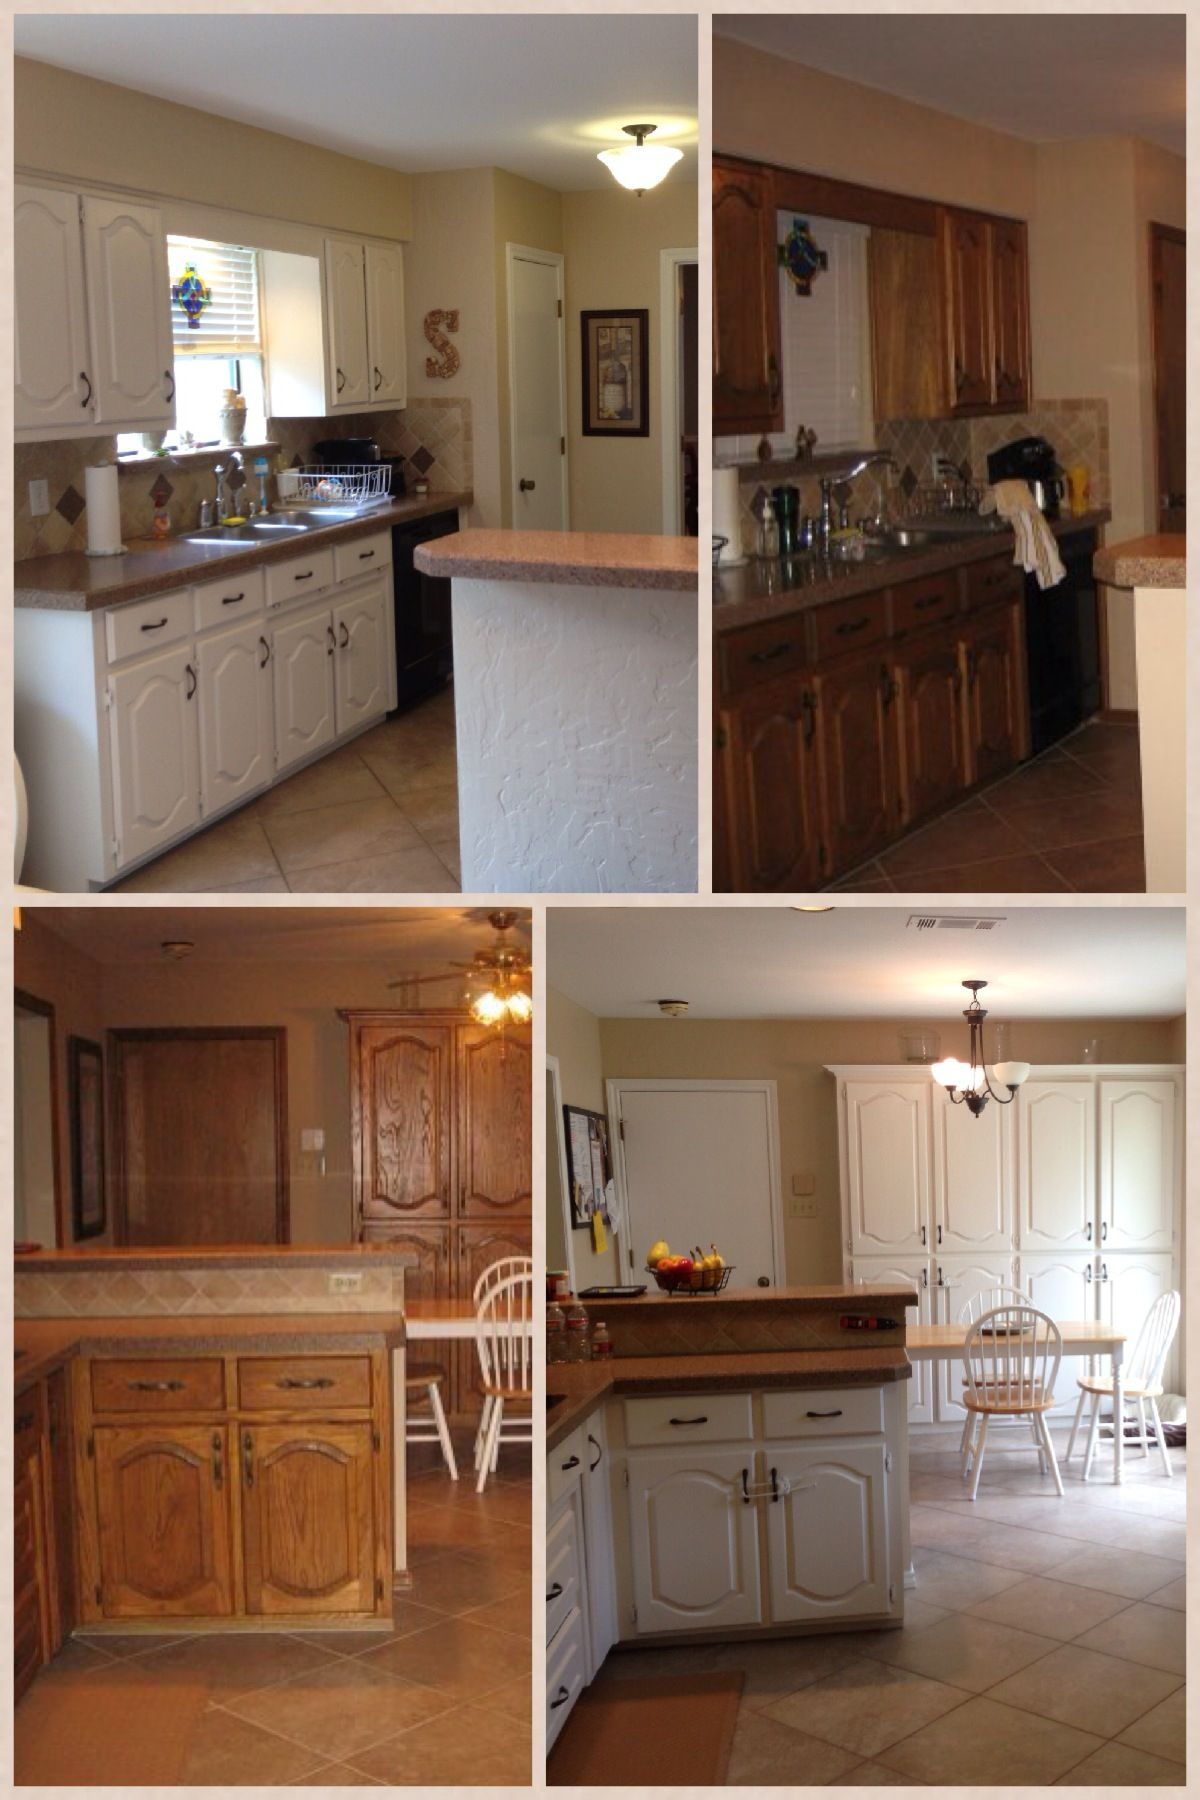 Before And After Painting Kitchen Cabinets Trim And Doors Sw Divine White Pa Refinishing Cabinets Kitchen Cabinets Before And After Refacing Kitchen Cabinets